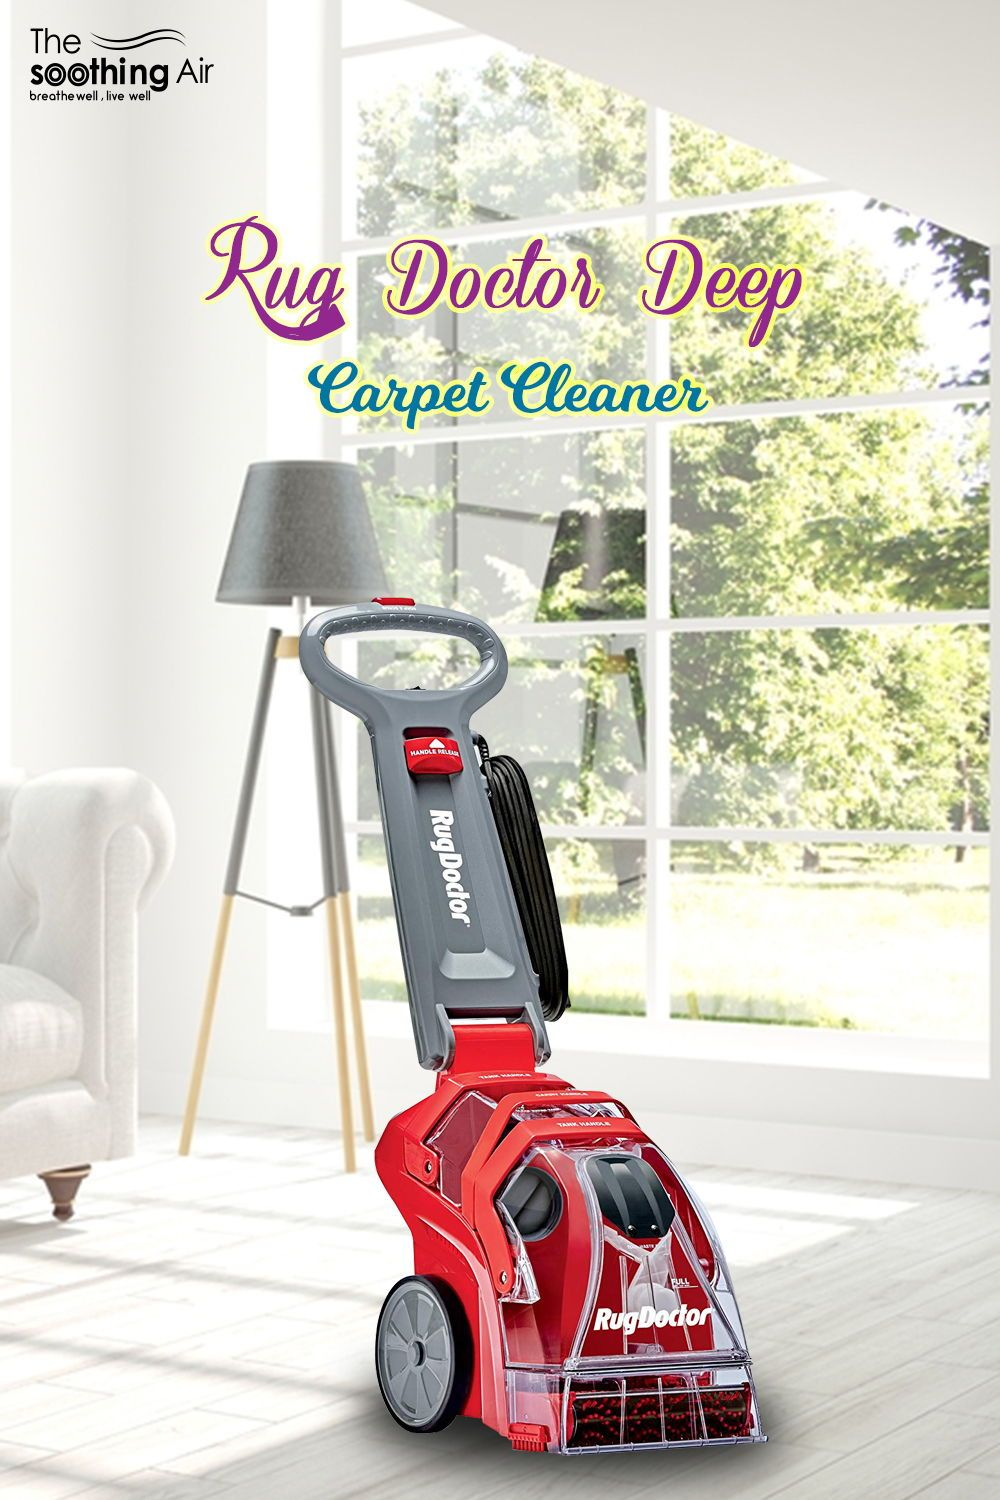 Top 10 Carpet Cleaning Machines April 2020 Reviews Buyers Guide Carpet Cleaning Machines Carpet Cleaners Best Carpet Cleaning Solution